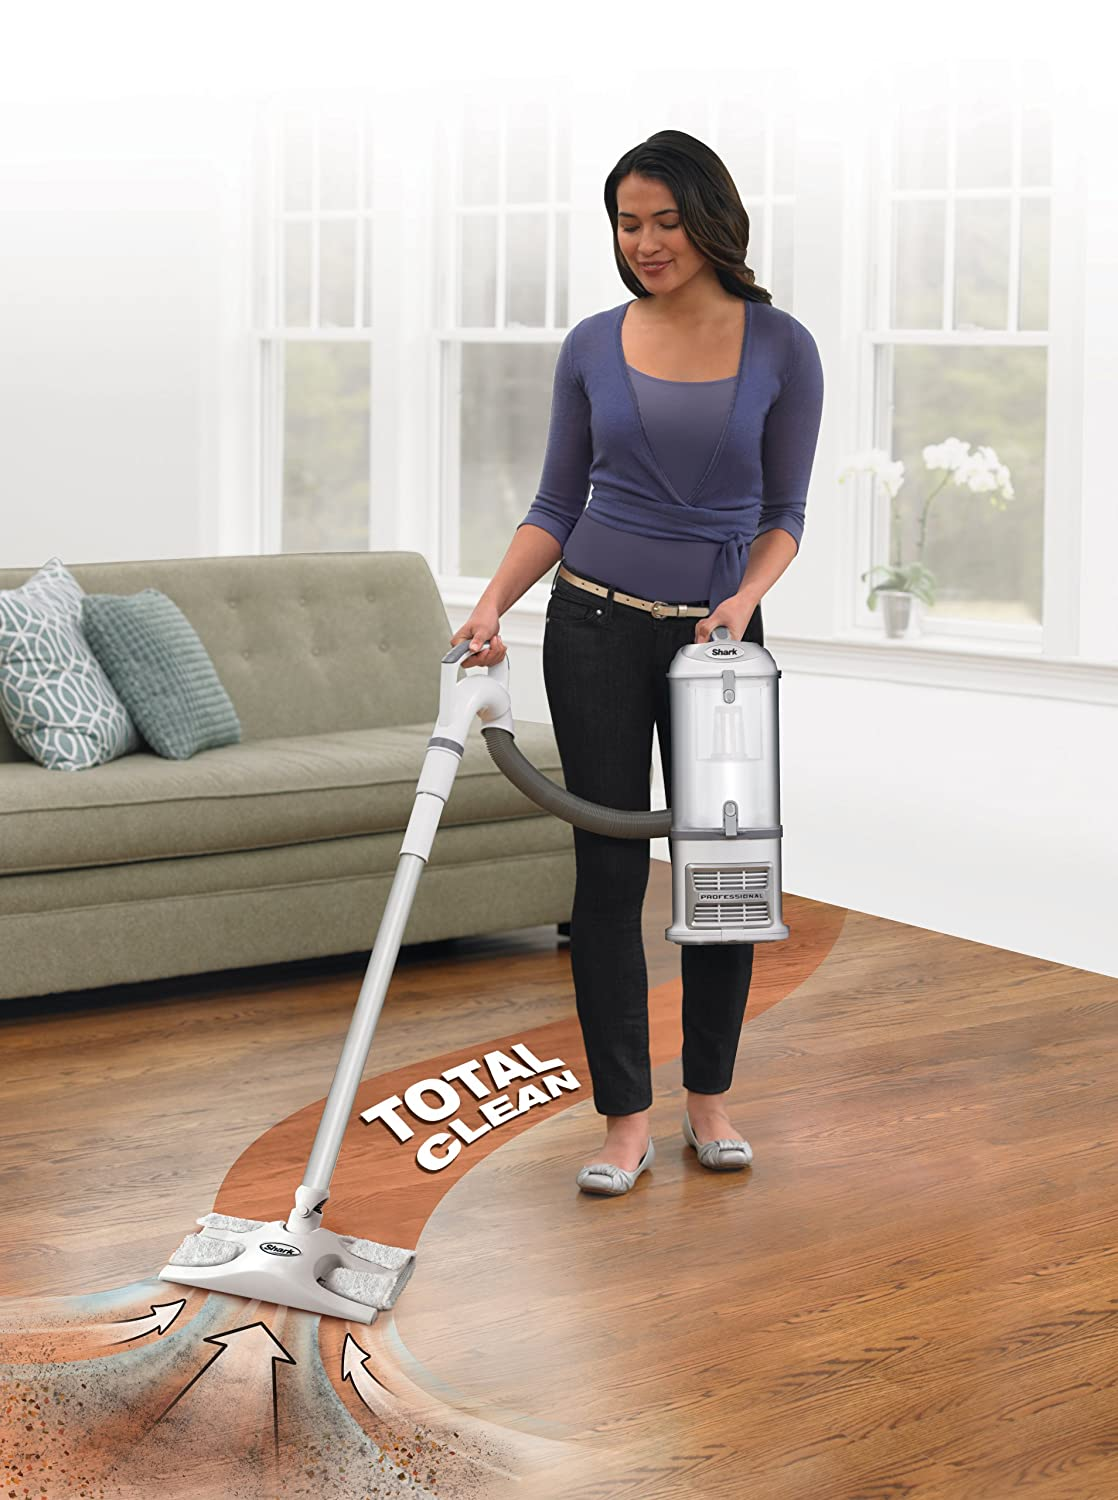 Best Vacuum For Tile Floors 2018 Top Vacuum Cleaner Guide